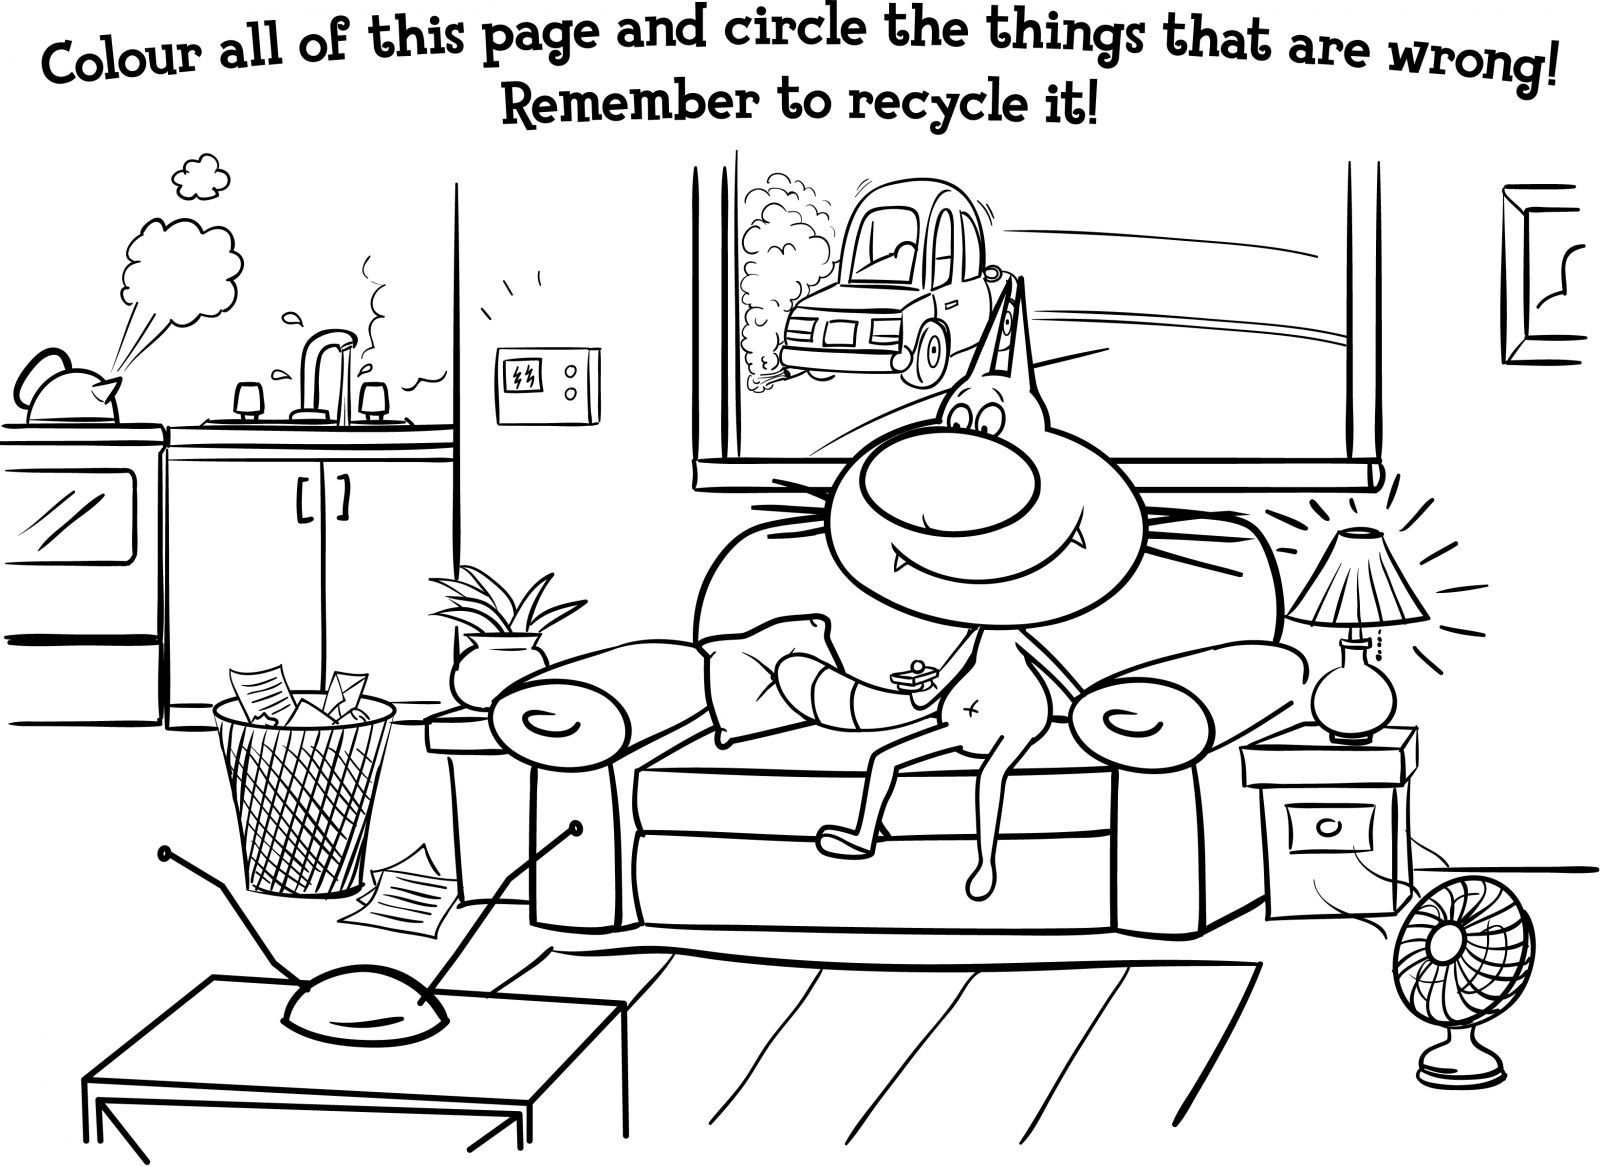 Recycling coloring pages coloring home for Recycling coloring pages